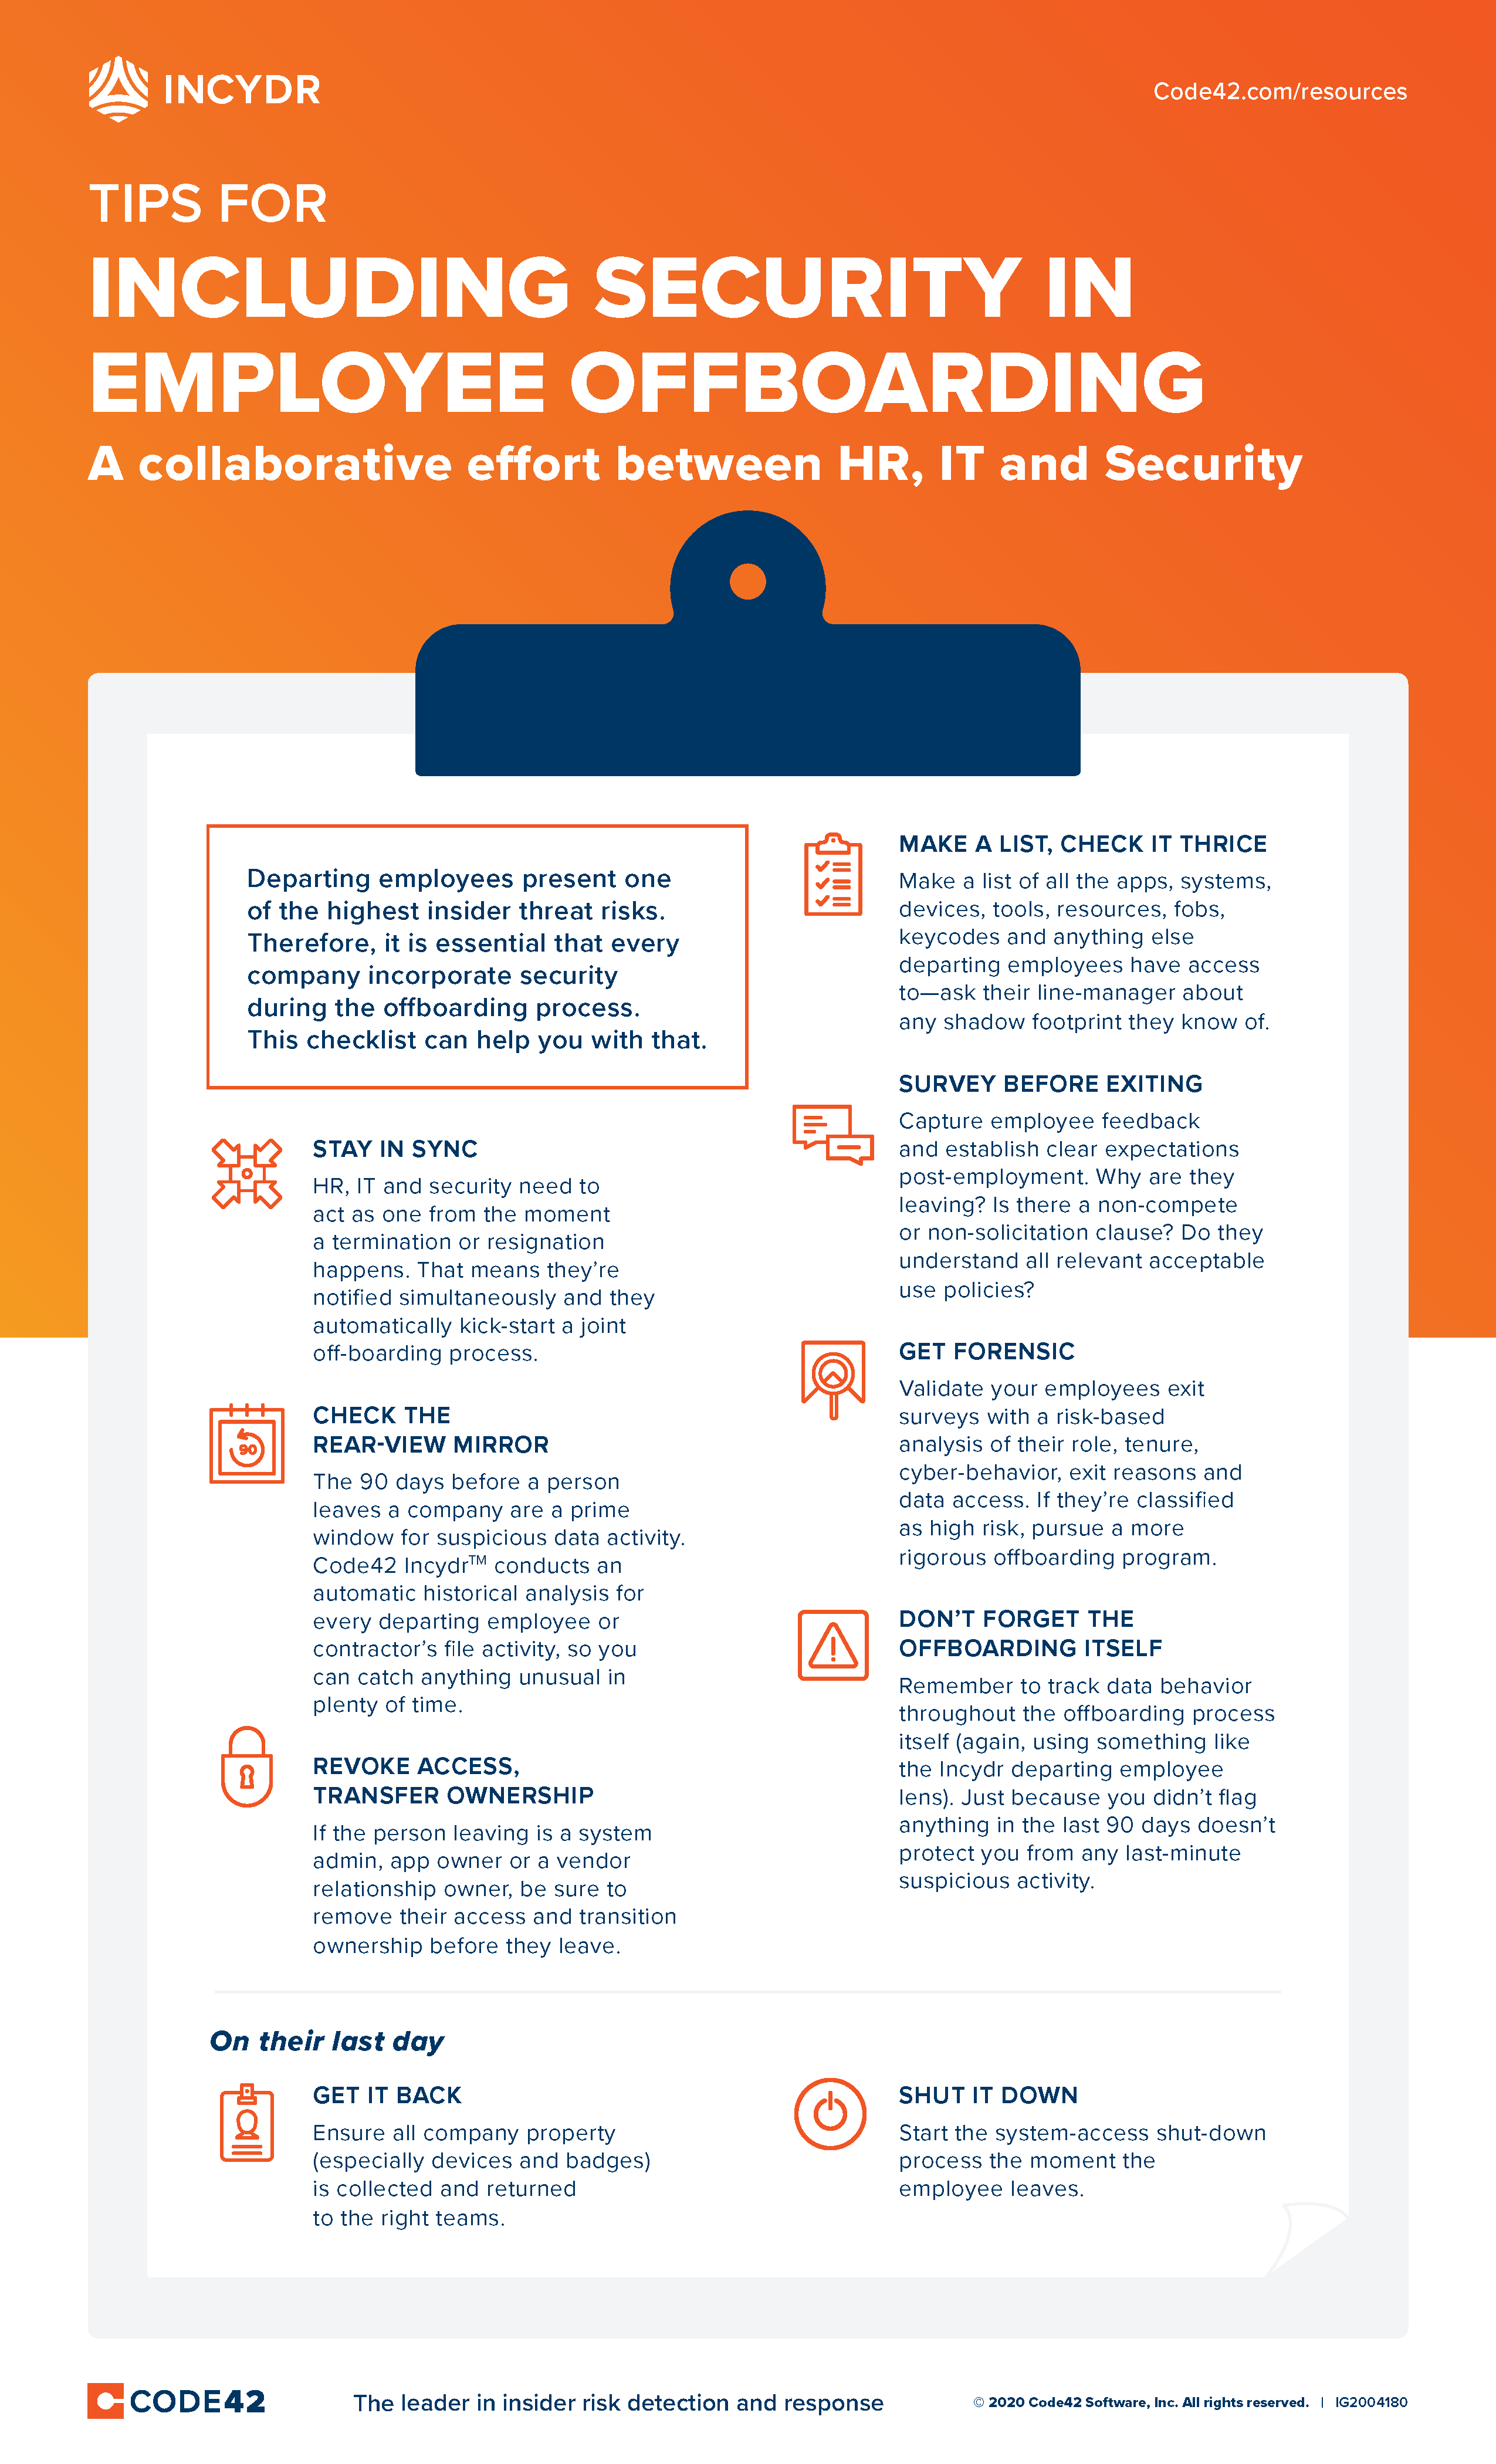 An infographic listing nine tips on how to include security in your employee offboarding process.